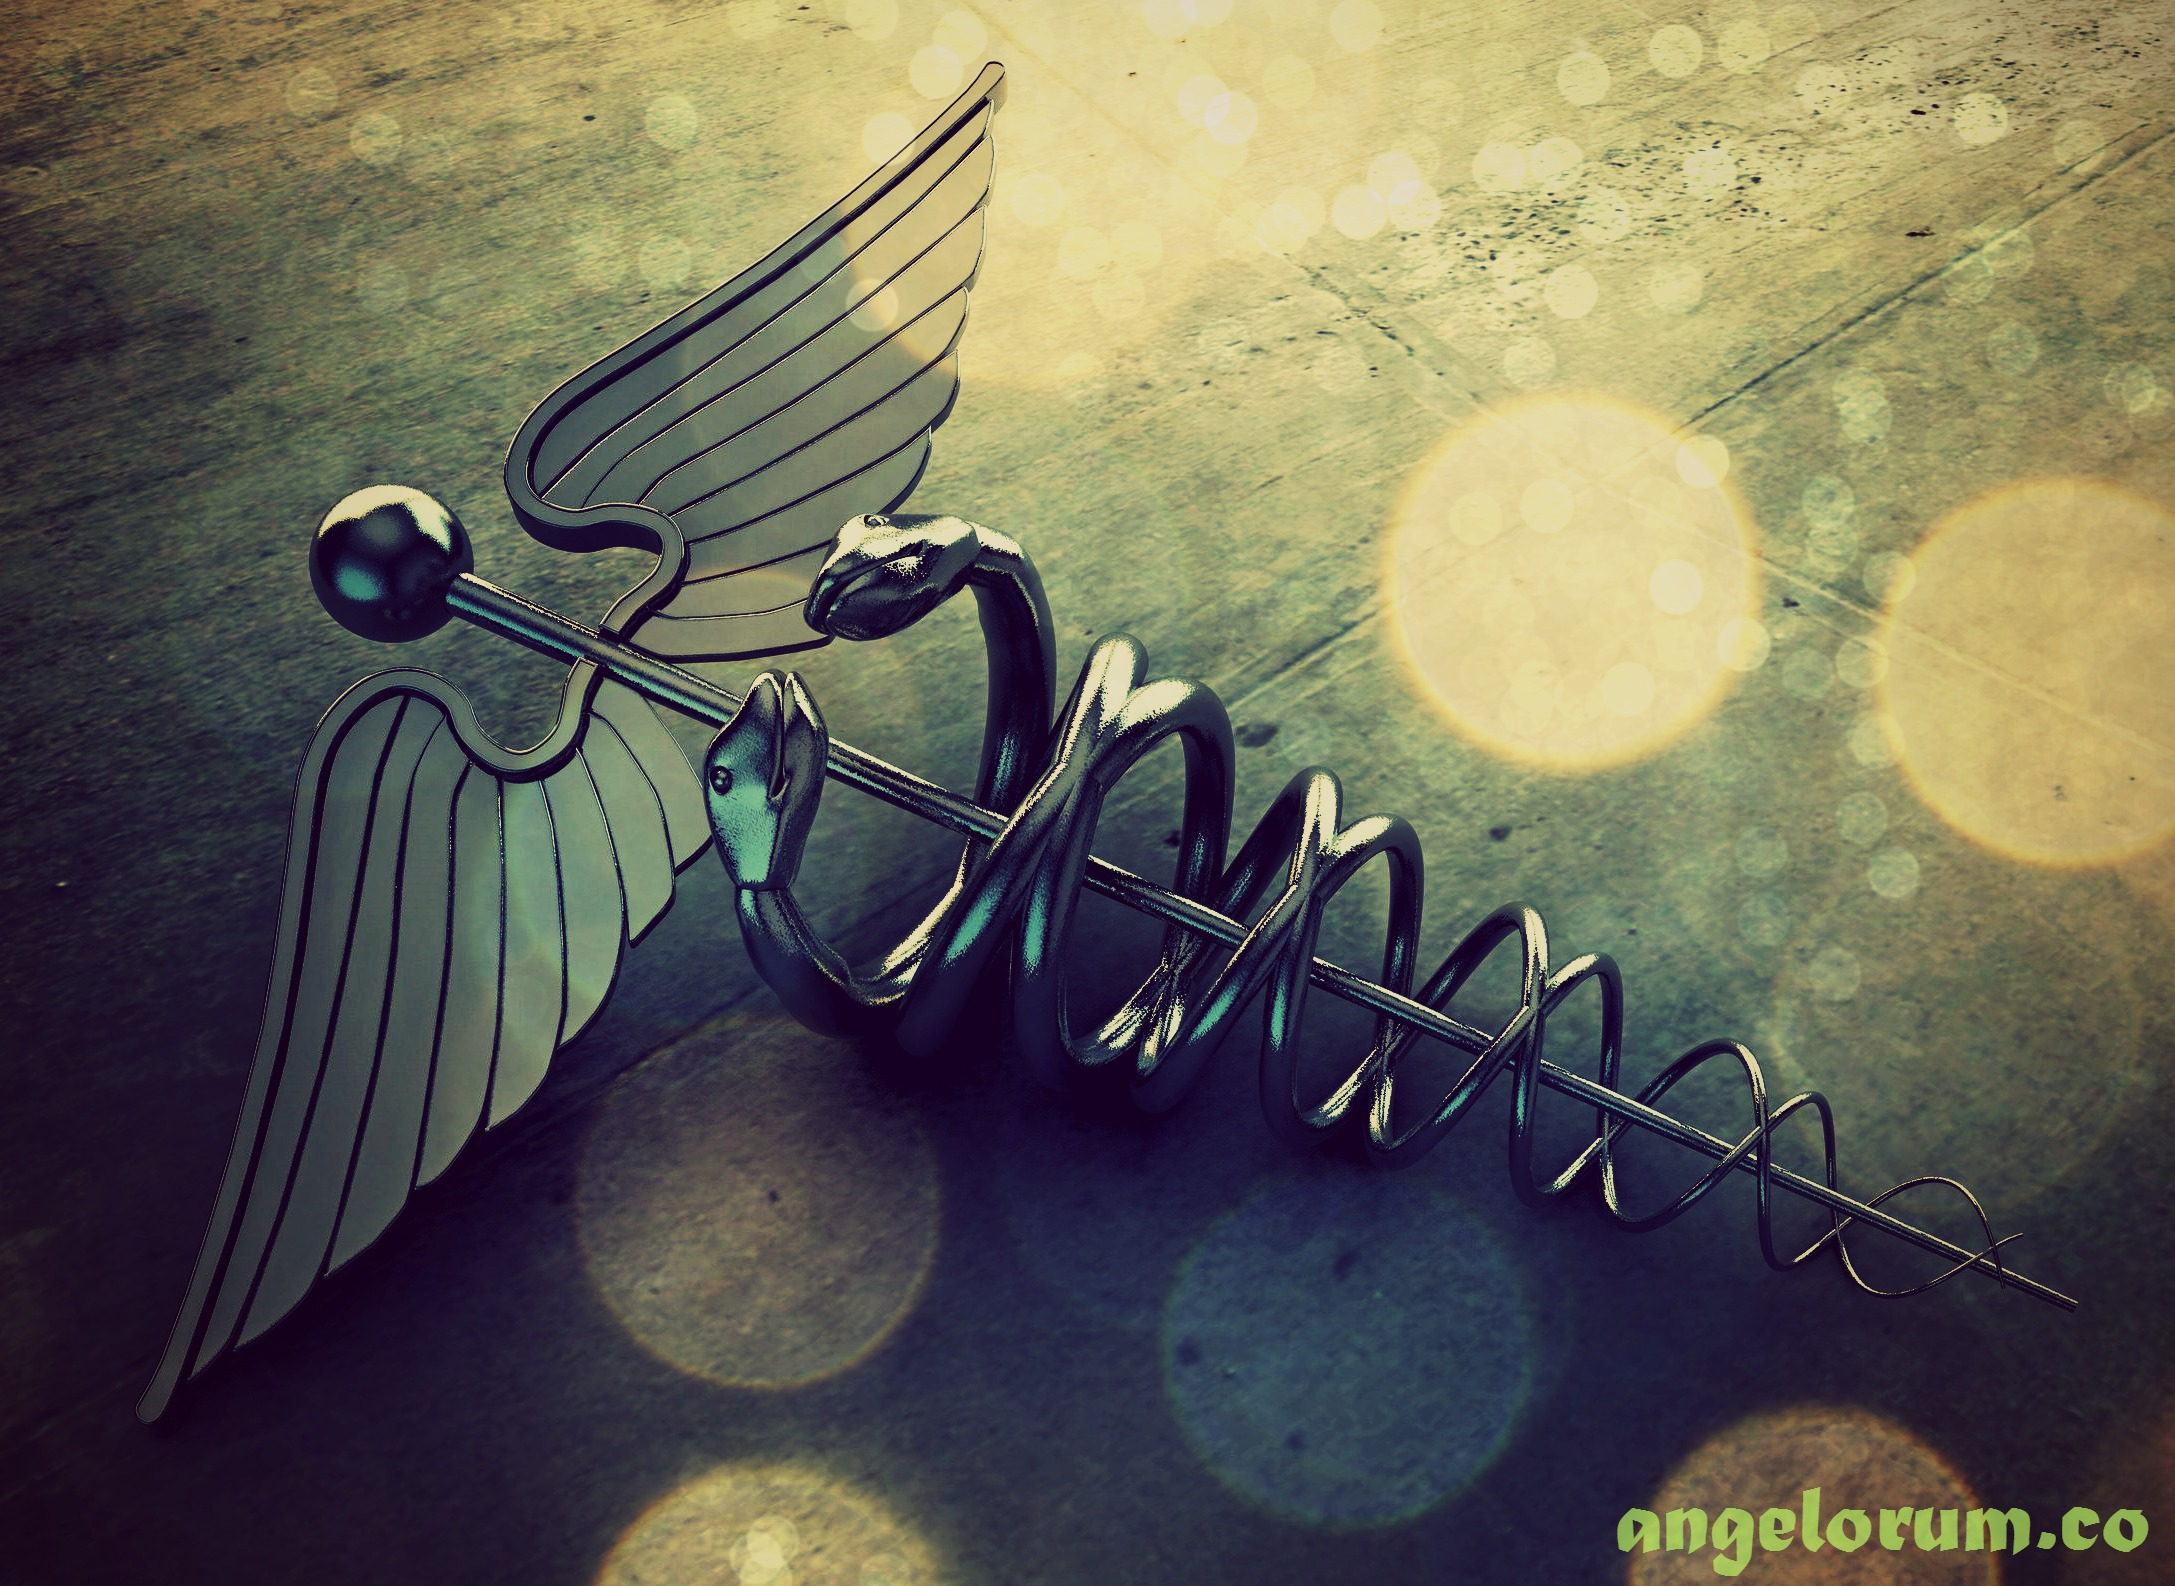 caduceus - symbol of Archangel Raphael